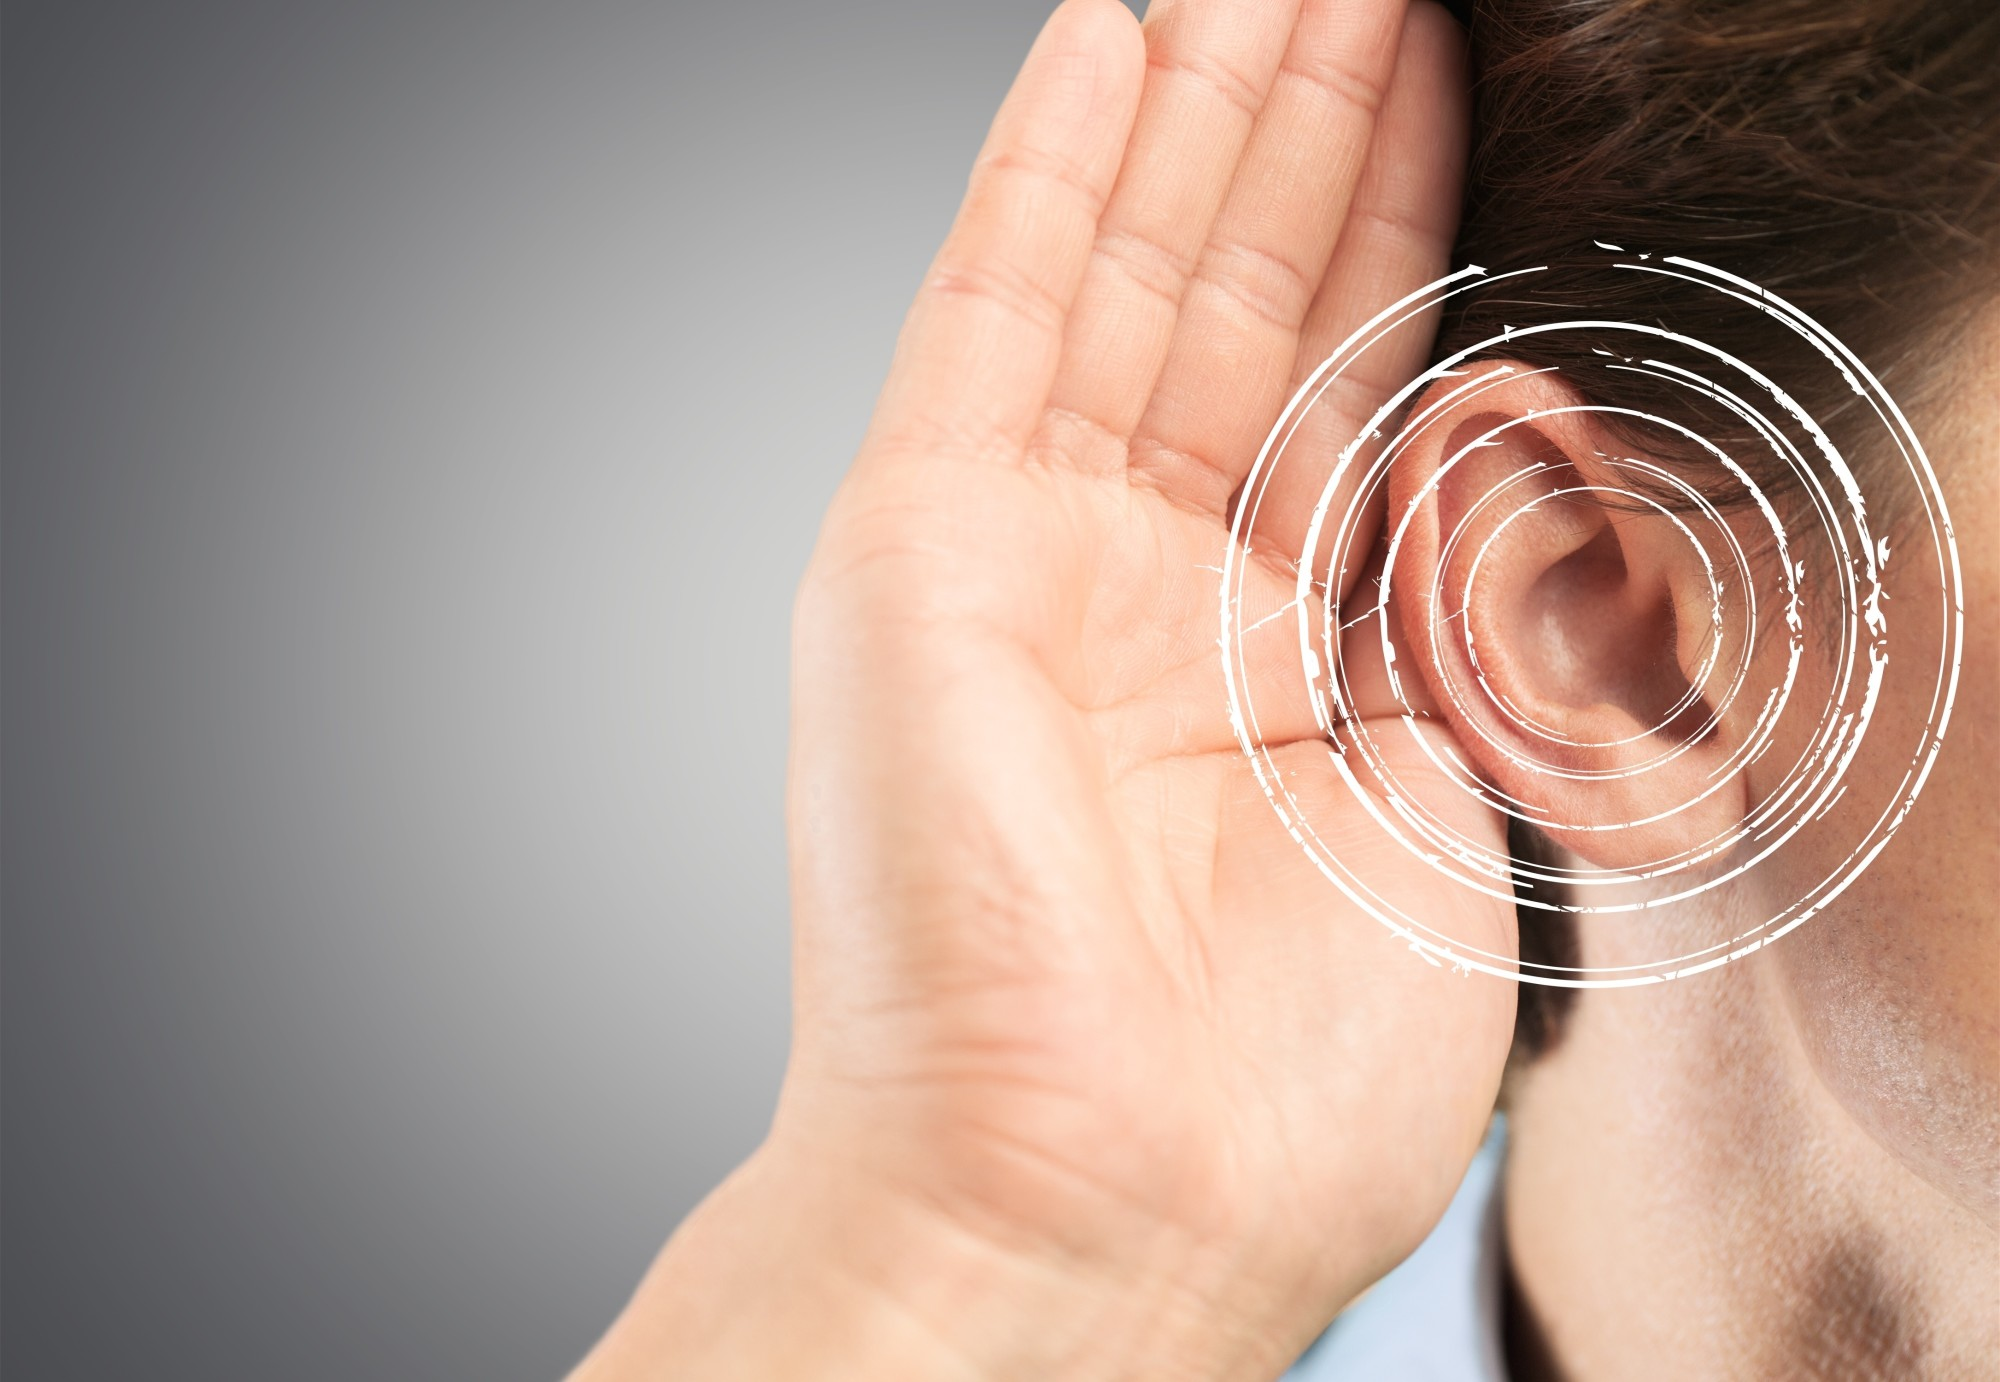 Signs You Should Go and Get Your Hearing Tested